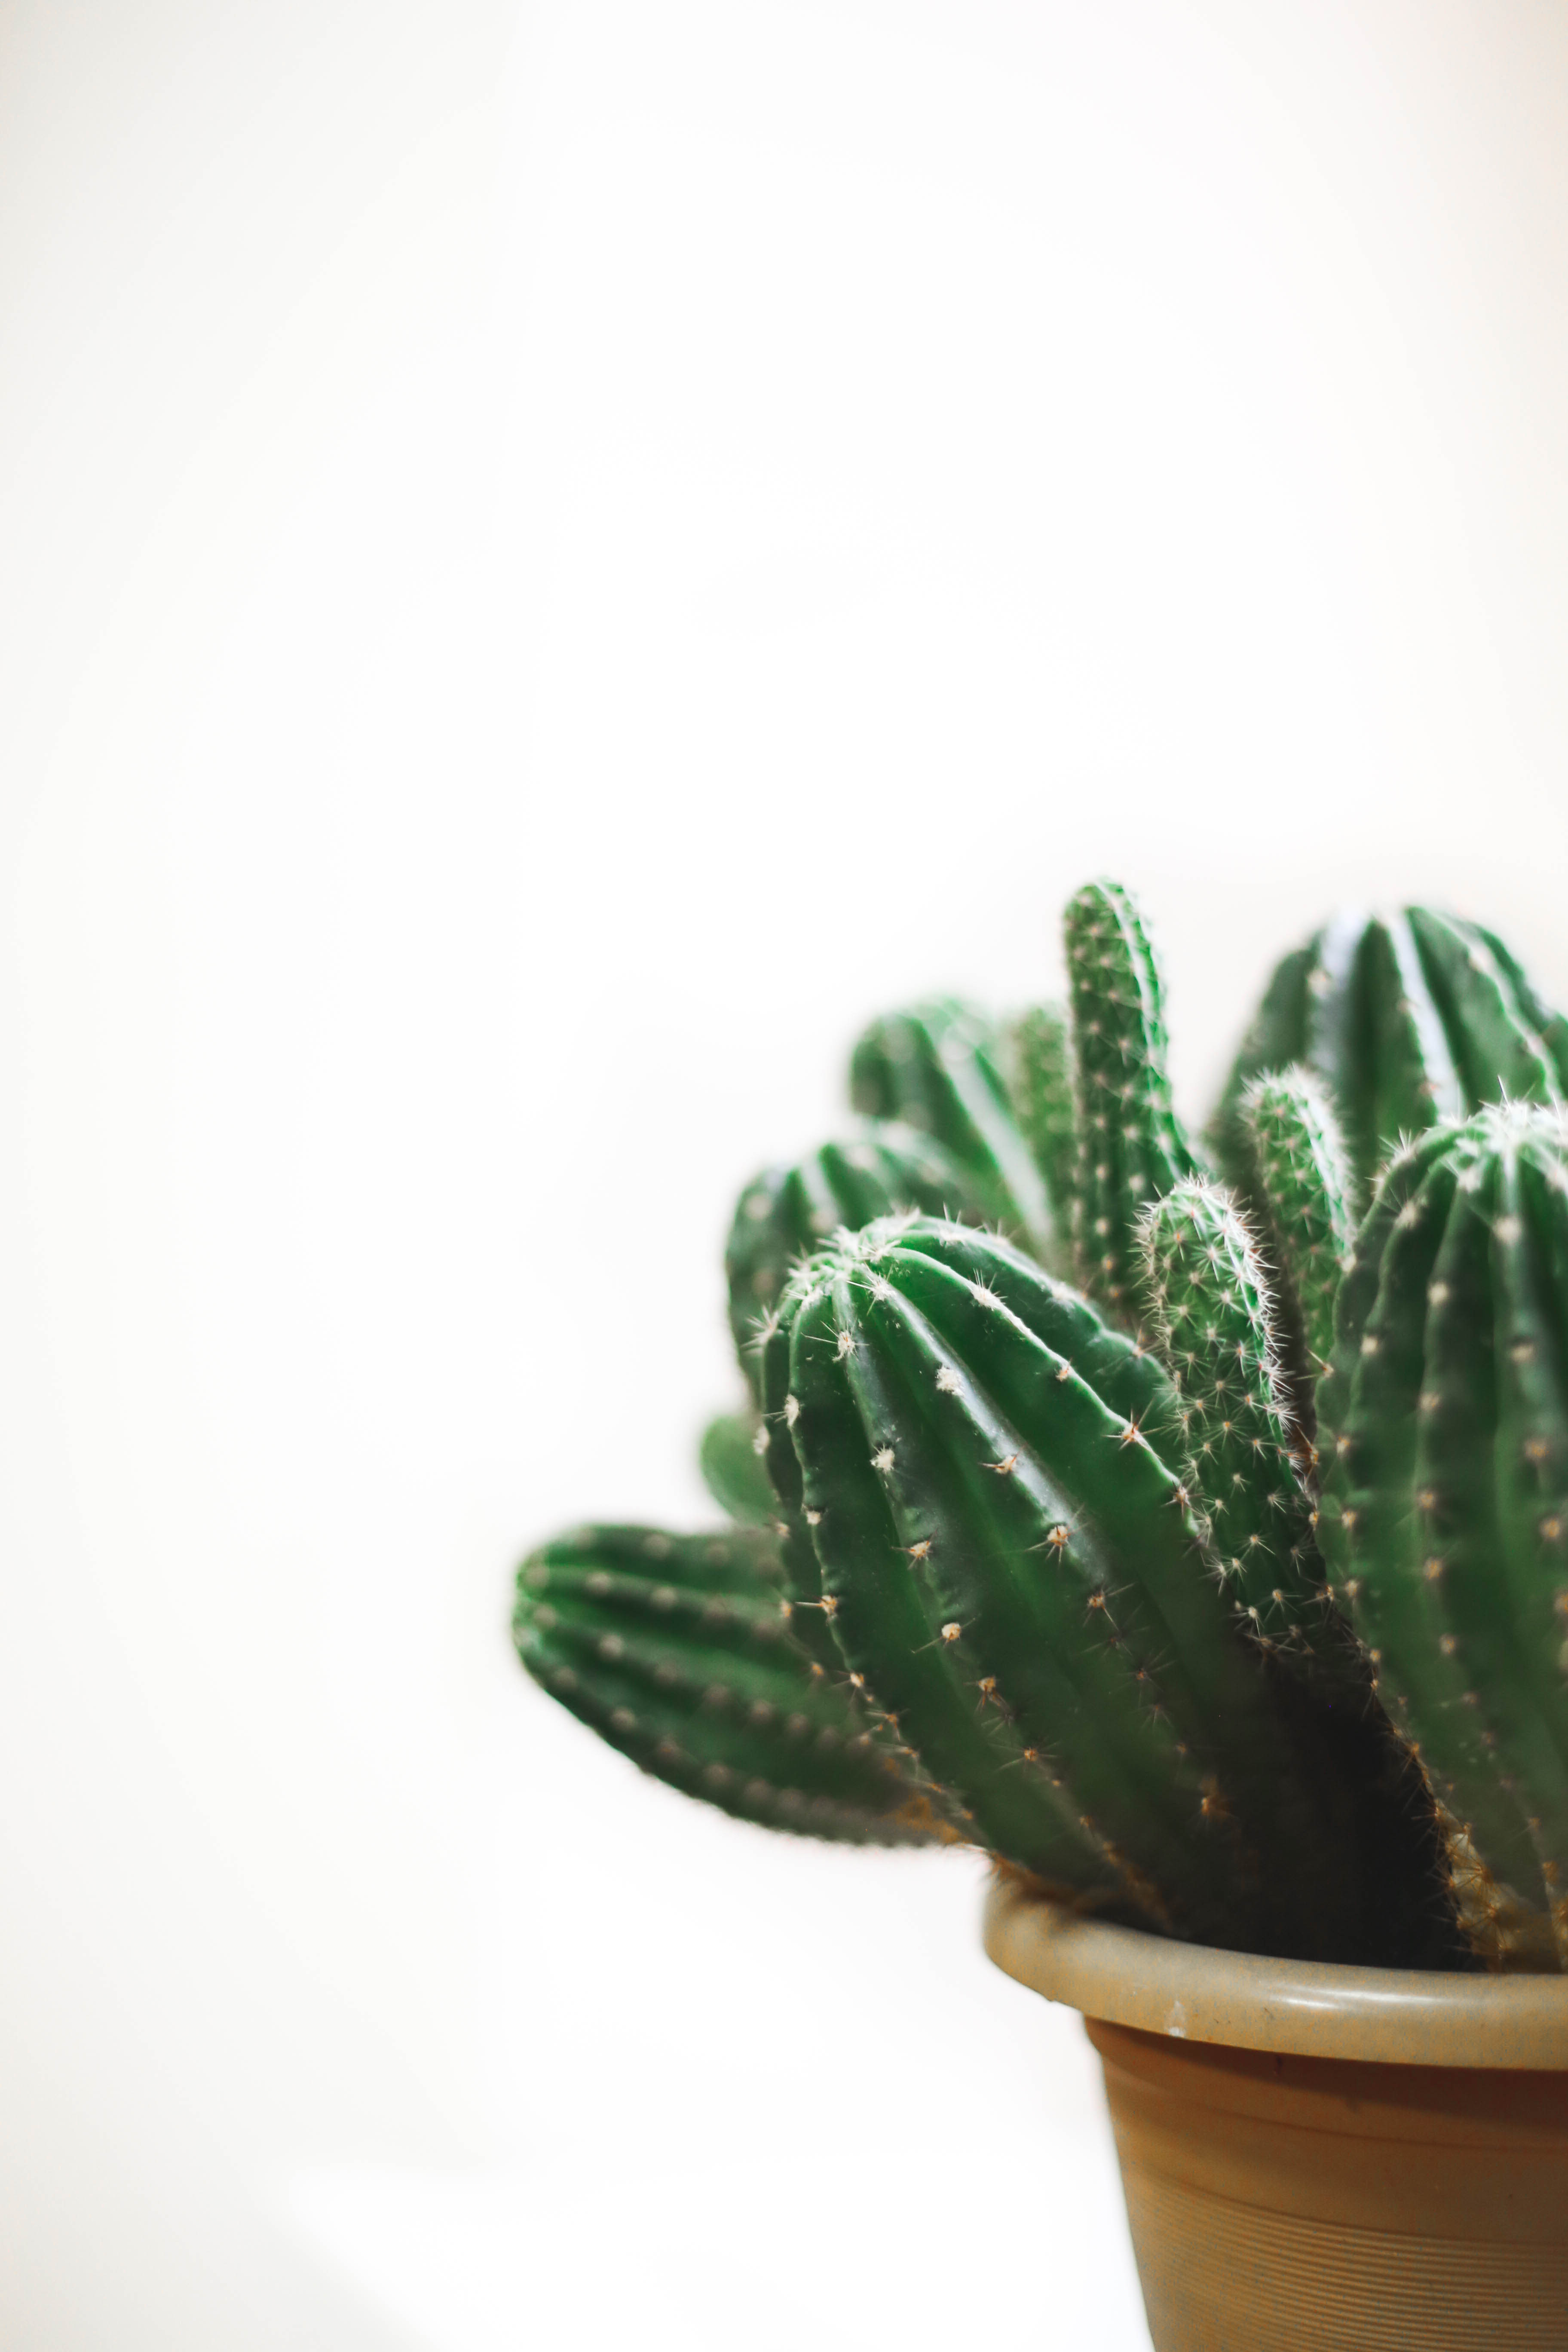 Samsung Mobile Wallpaper Hd Download Cactus Plant On Brown Pot 183 Free Stock Photo